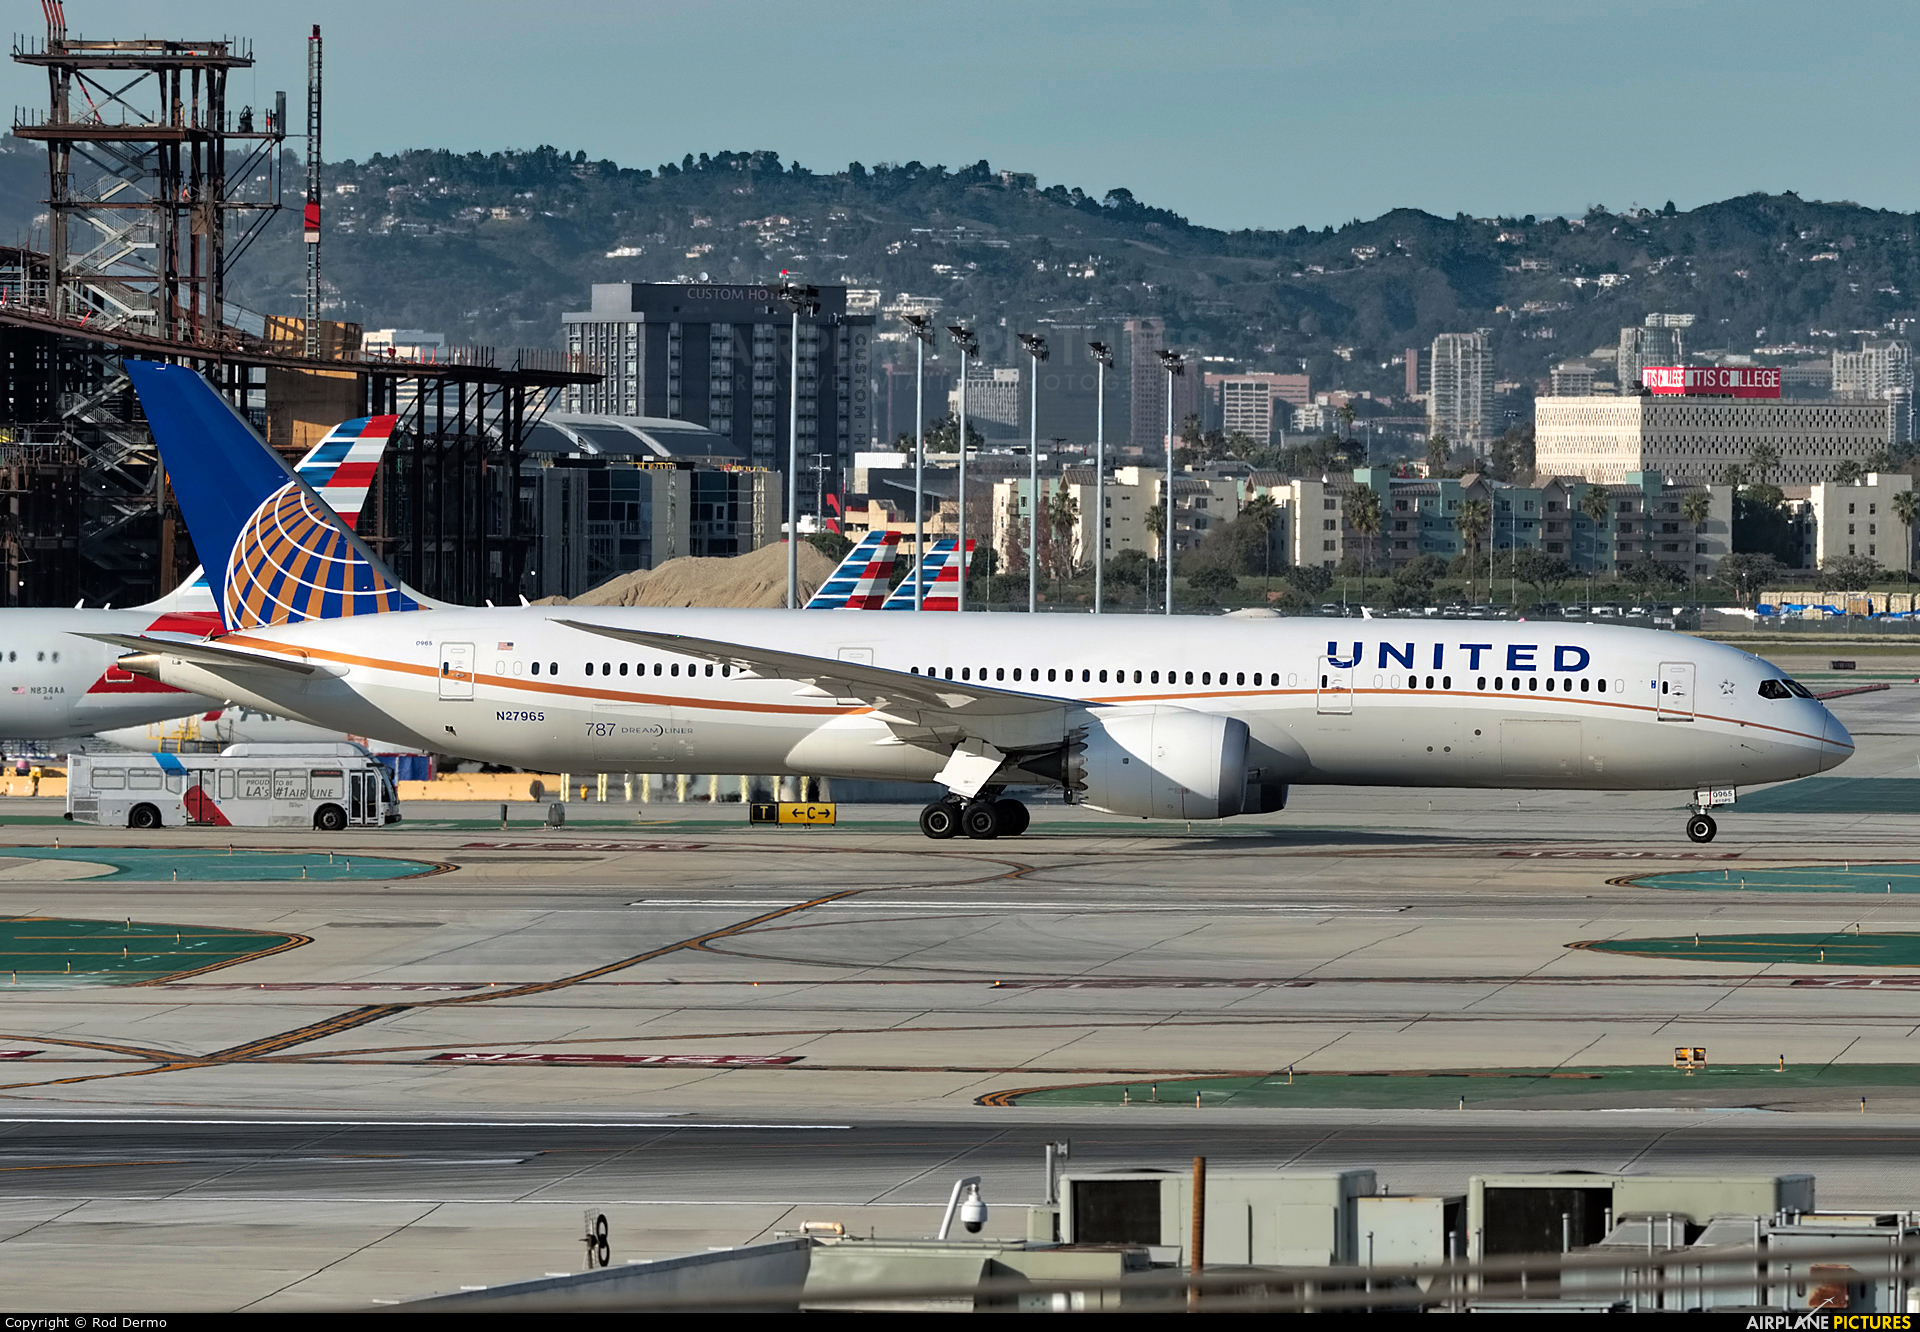 United Airlines N27965 aircraft at Los Angeles Intl